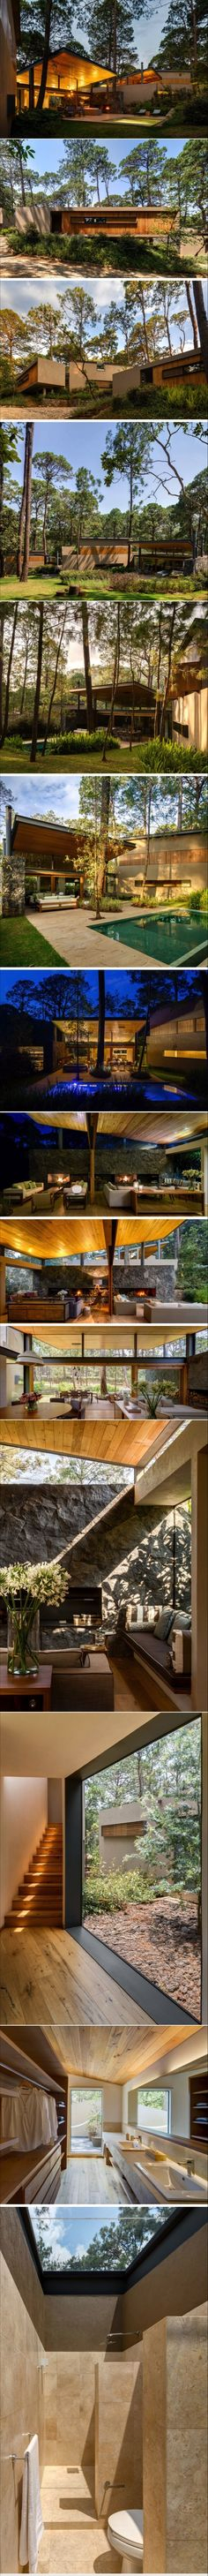 This new home of wood and stone was designed to enjoy the tranquility of the surrounding forest | CONTEMPORIST